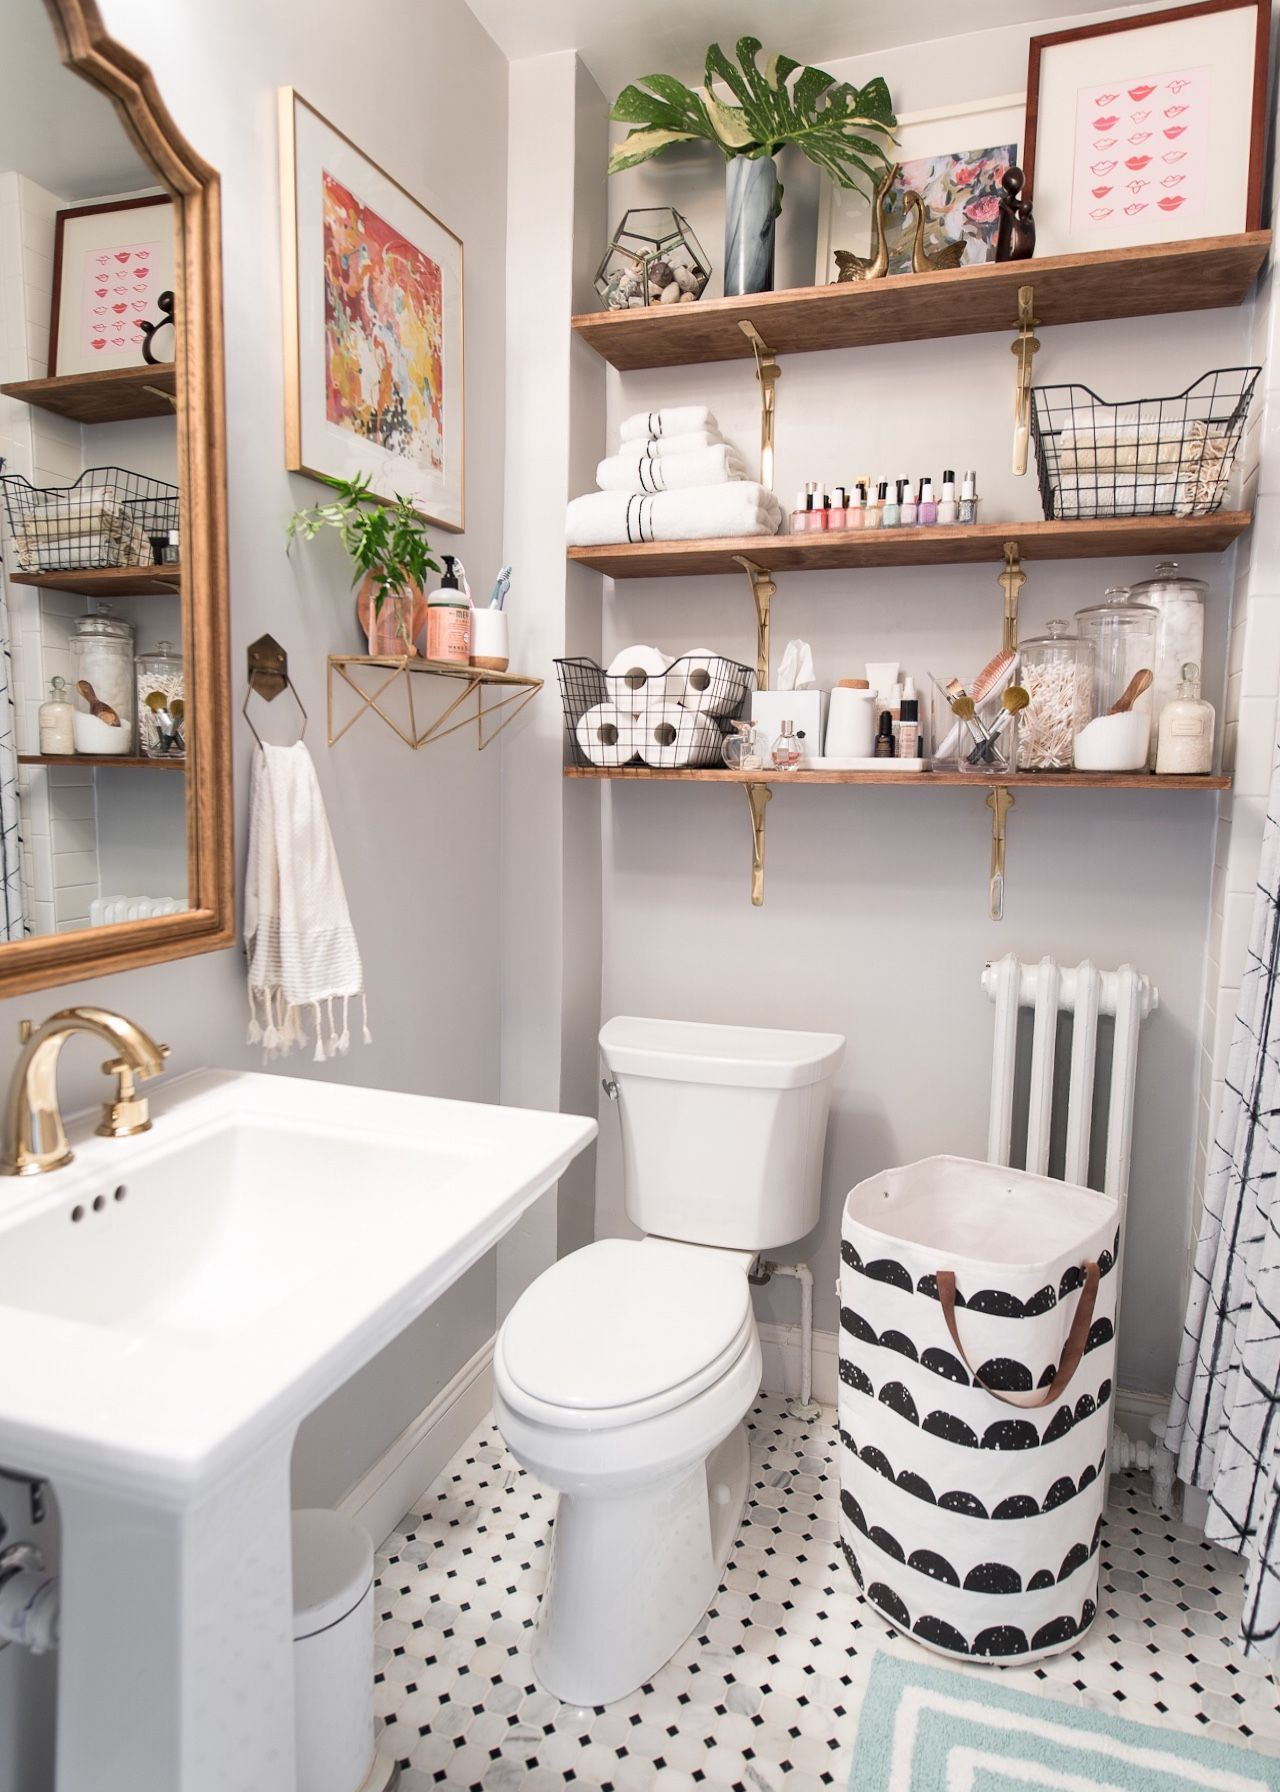 1920s Inspired Classic Small Bathroom Small Bathroom Furniture Bathroom Decor Apartment Classic Small Bathrooms